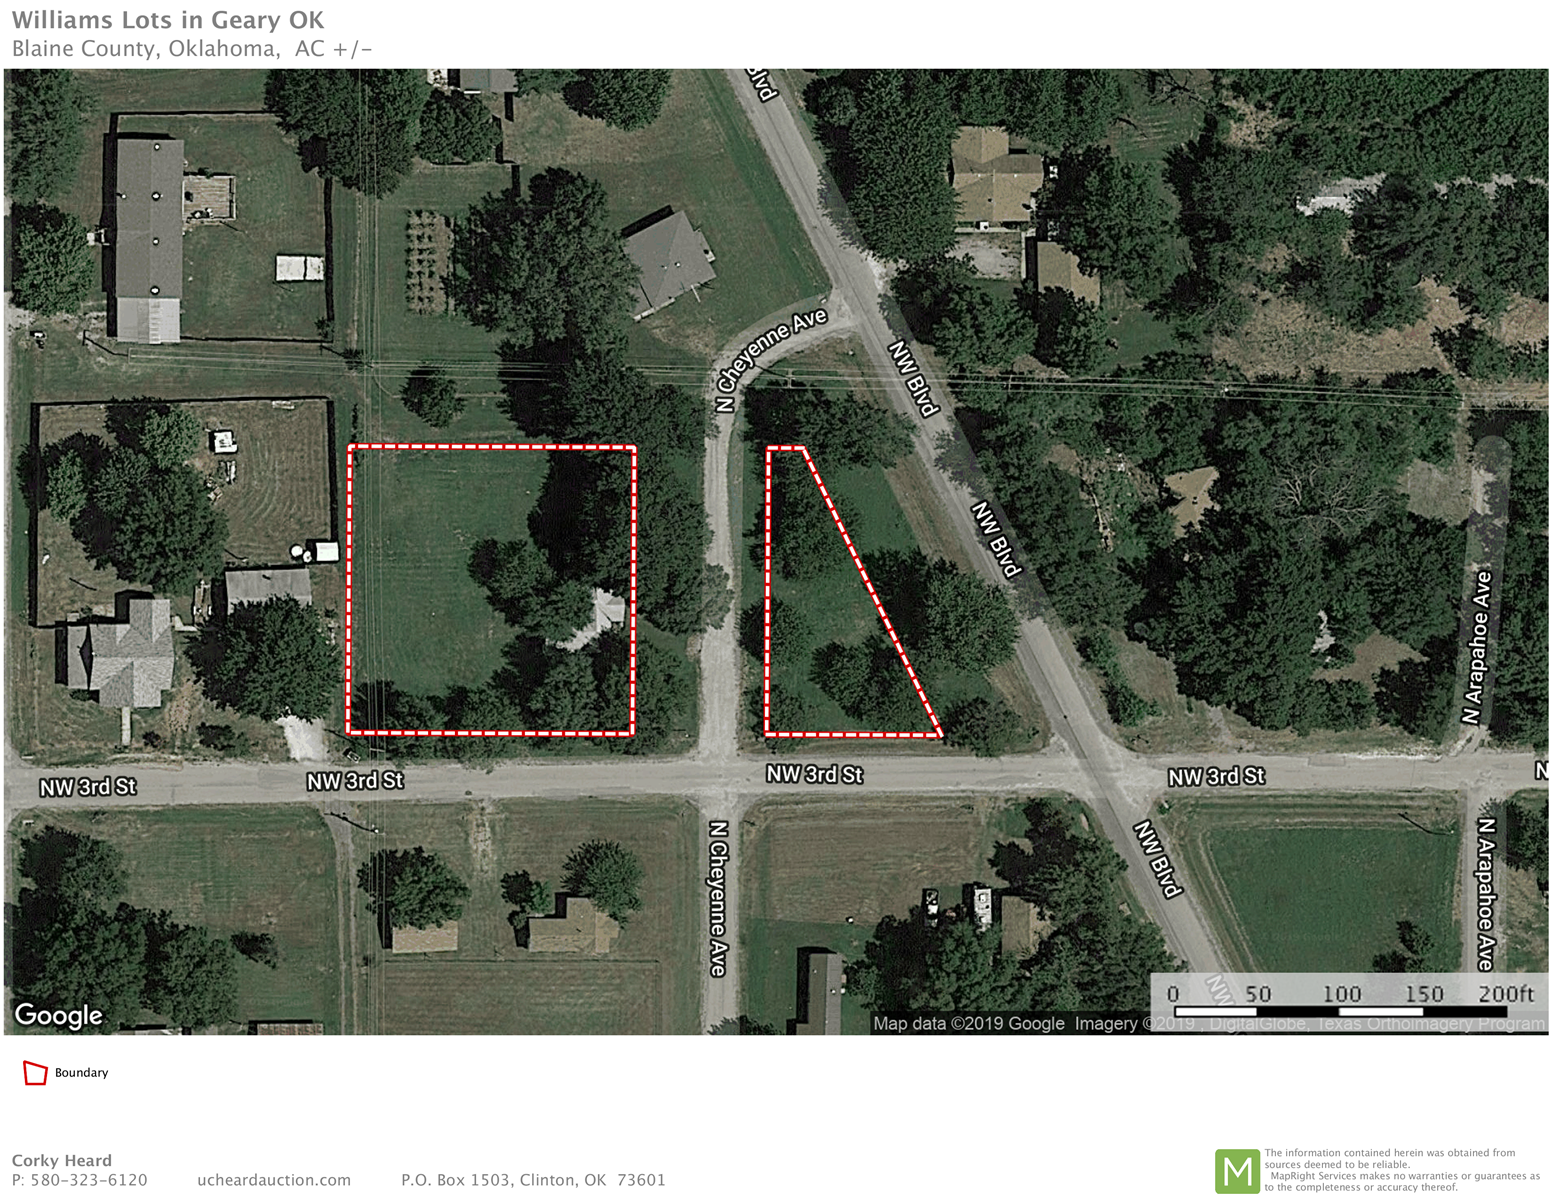 6 Residential Lots in Geary, OK FOR AUCTION.